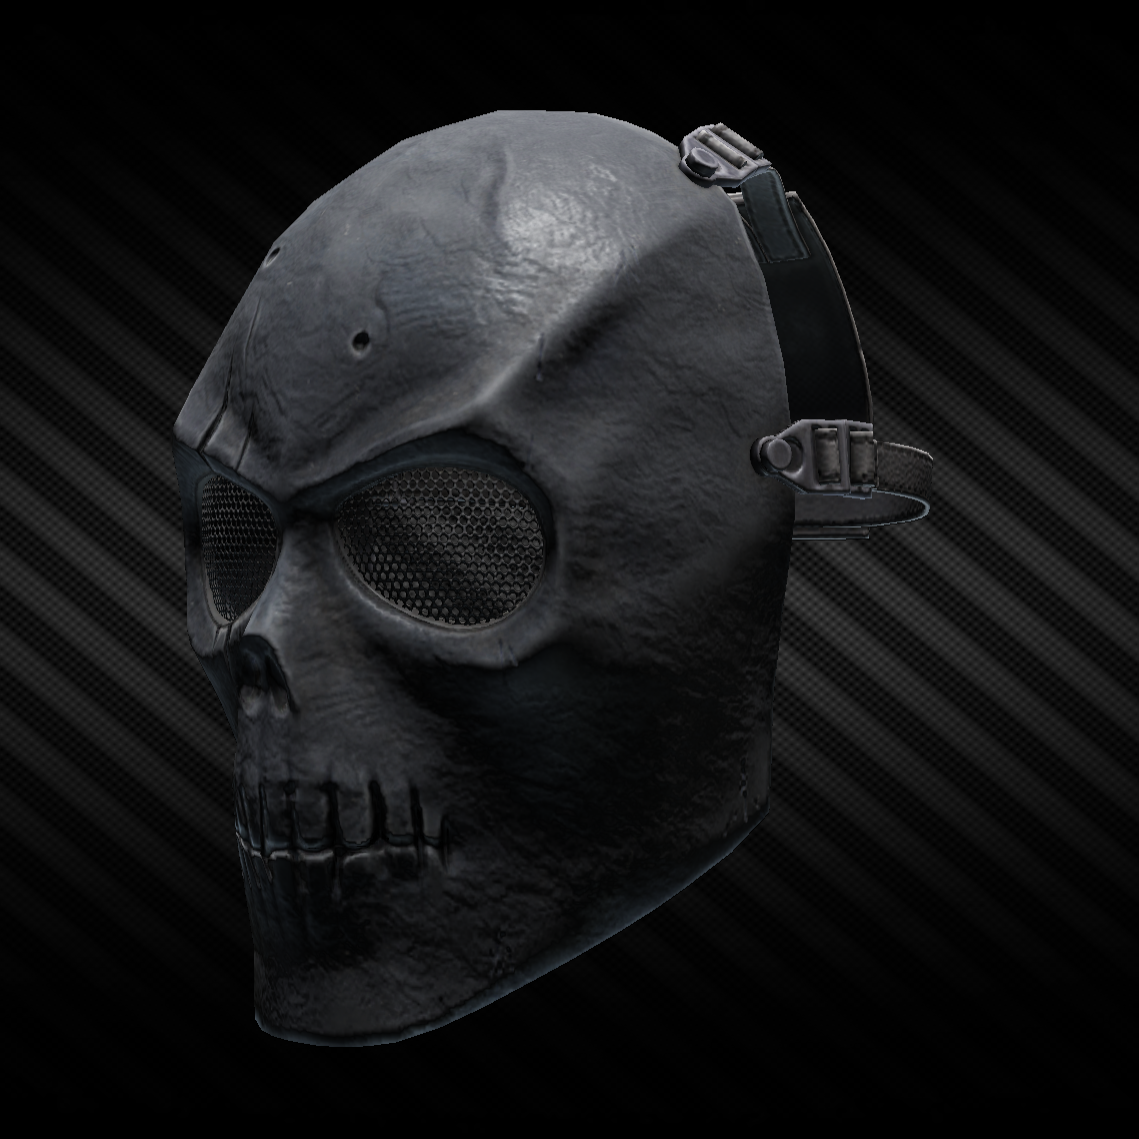 Deadly skull mask - The Official Escape from Tarkov Wiki